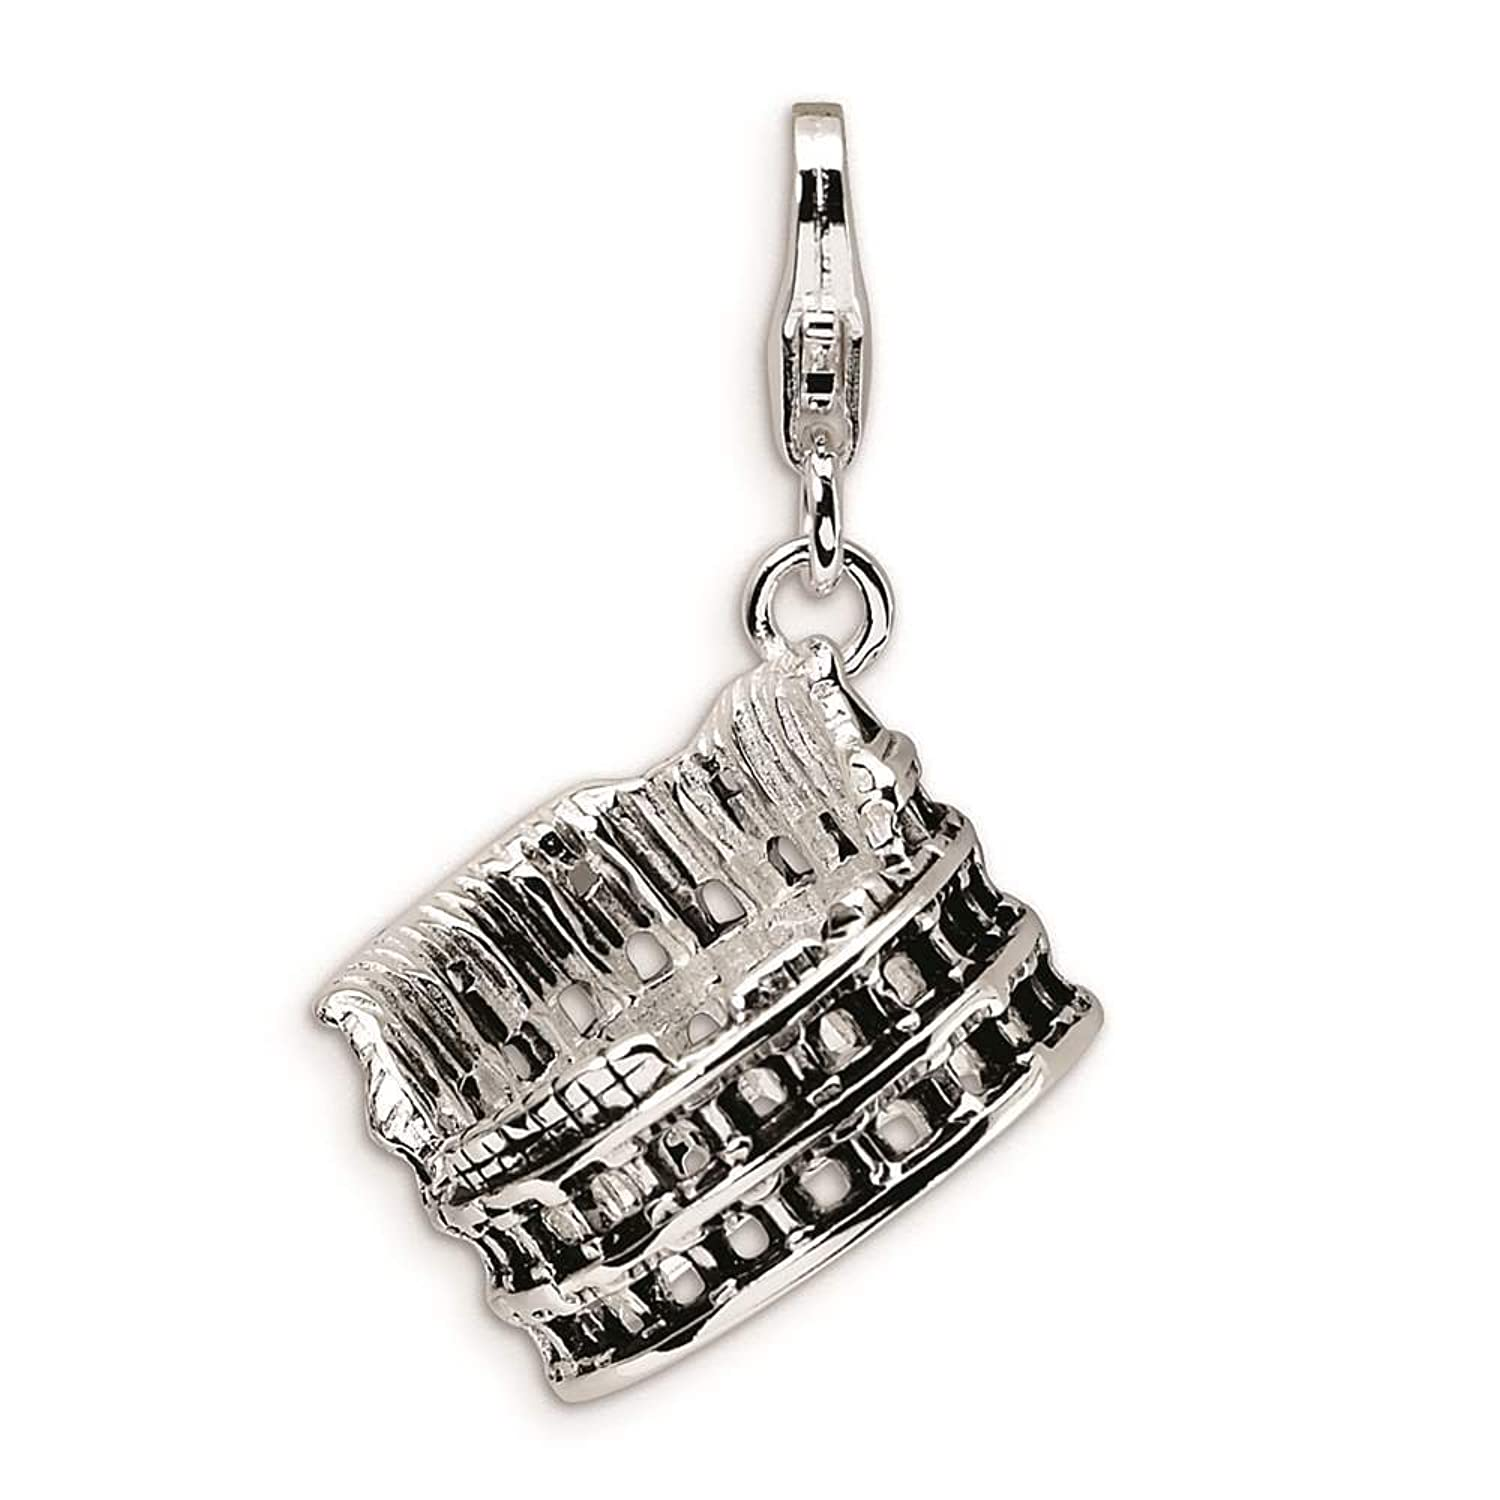 925 Sterling Silver 3-D Antiqued Colliseum w/ Lobster Clasp Charm - Amore La Vita Collection